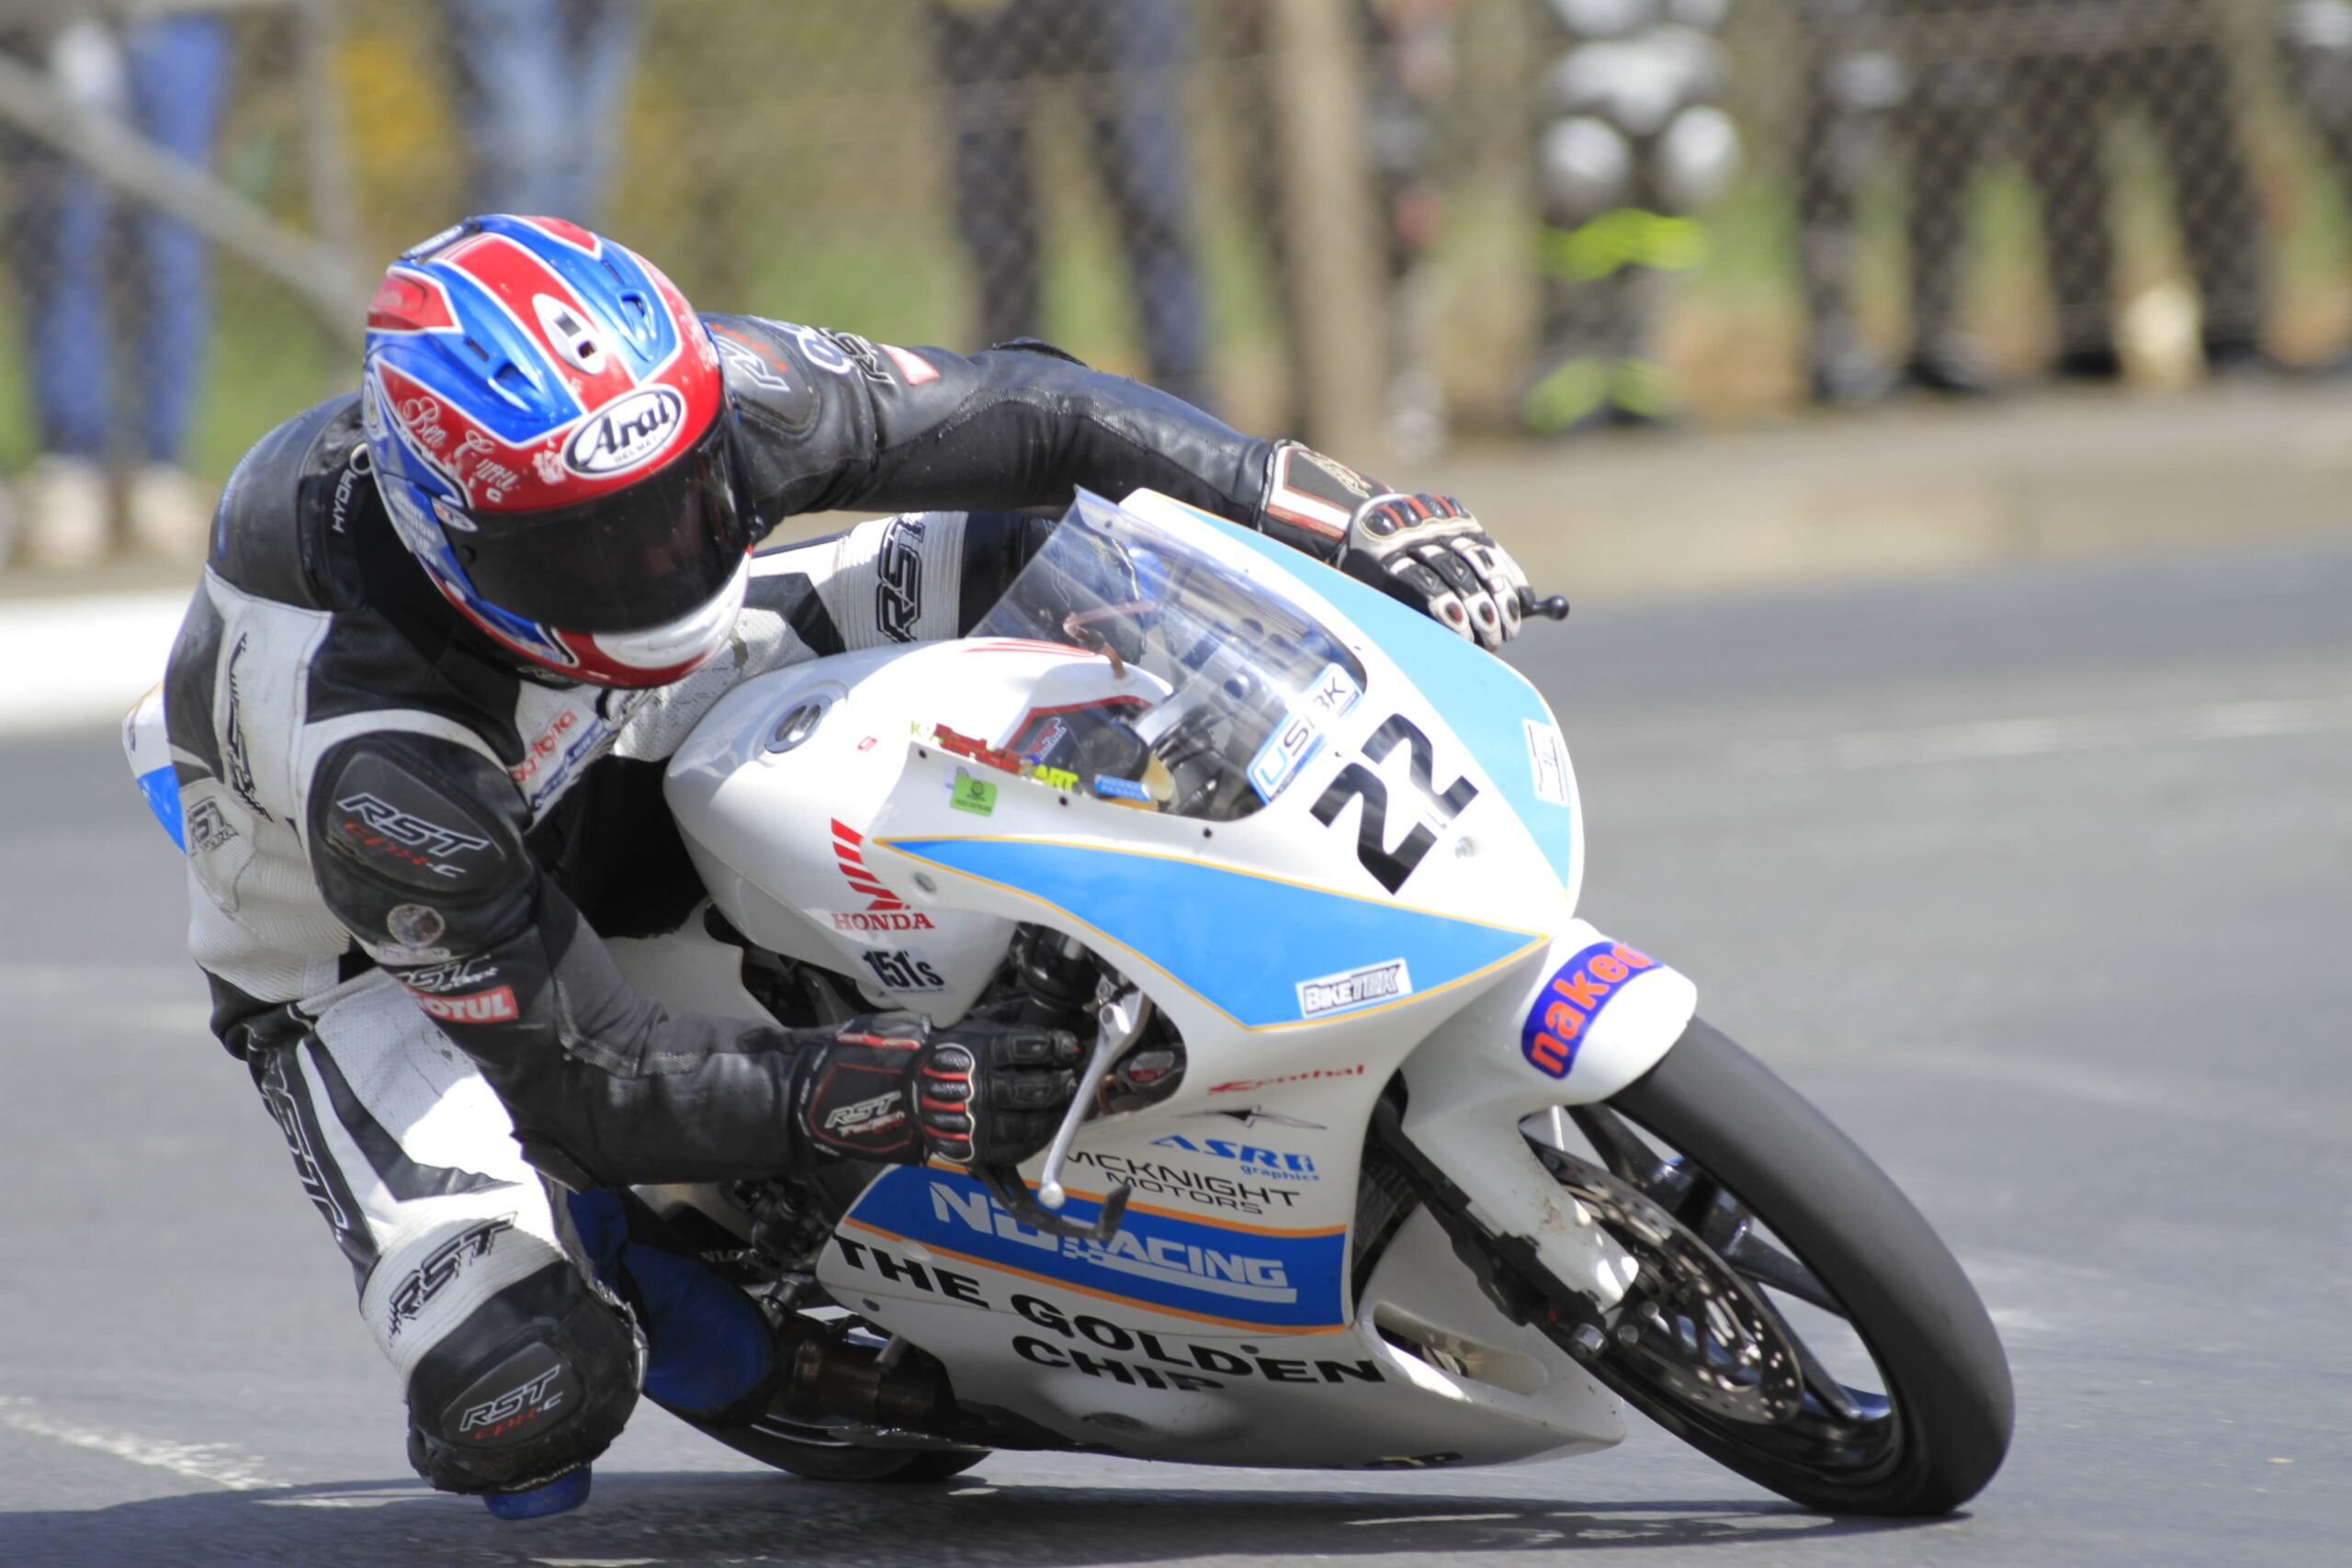 Lack Of Entries Put 125/Moto 3/Supersport 300 Class On Brink Of Leaving Cookstown Race Schedule